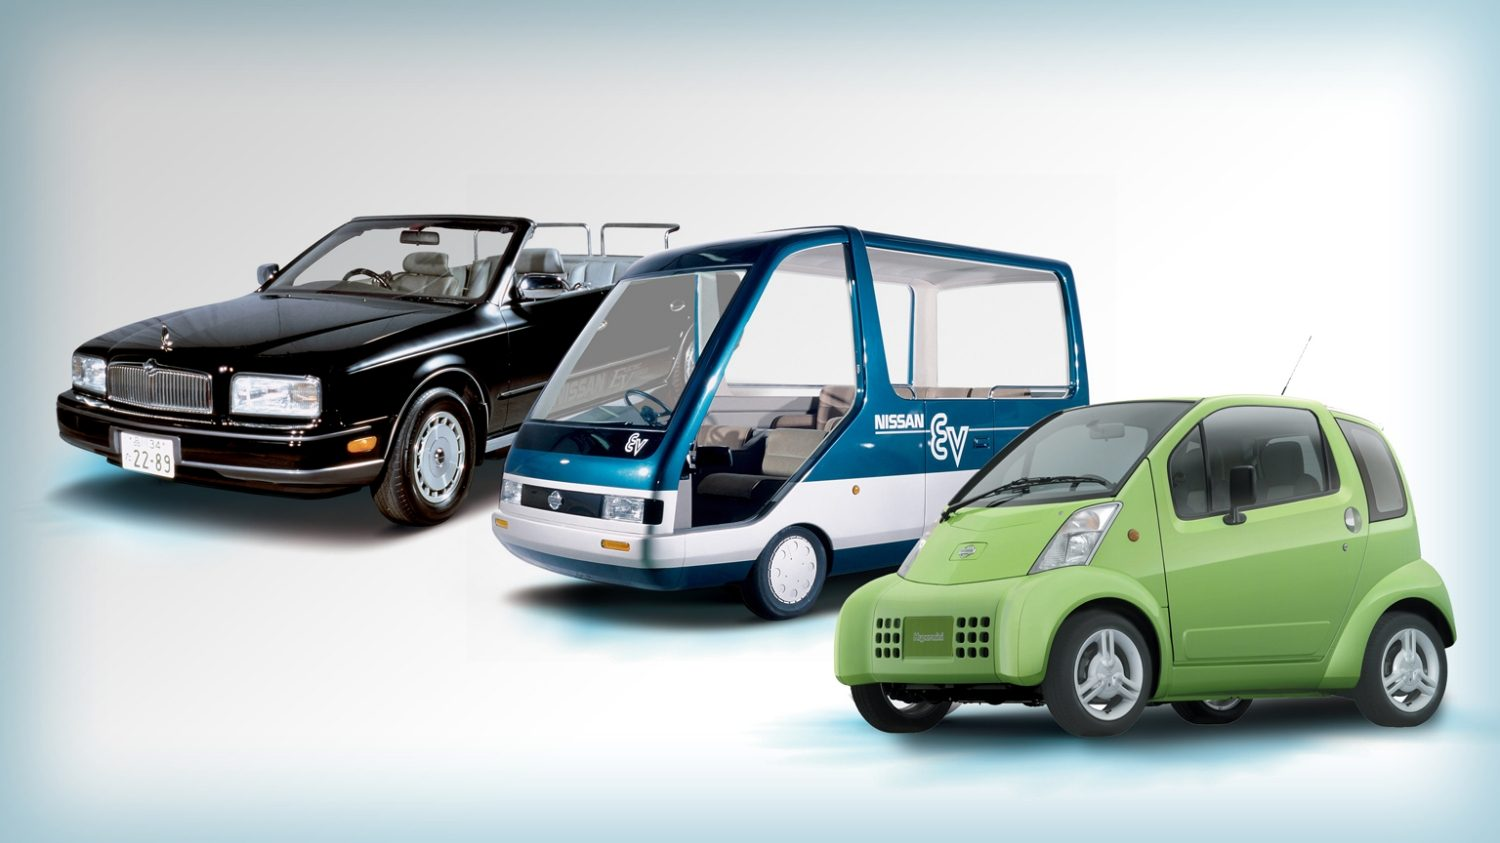 Nissan | Electric car history